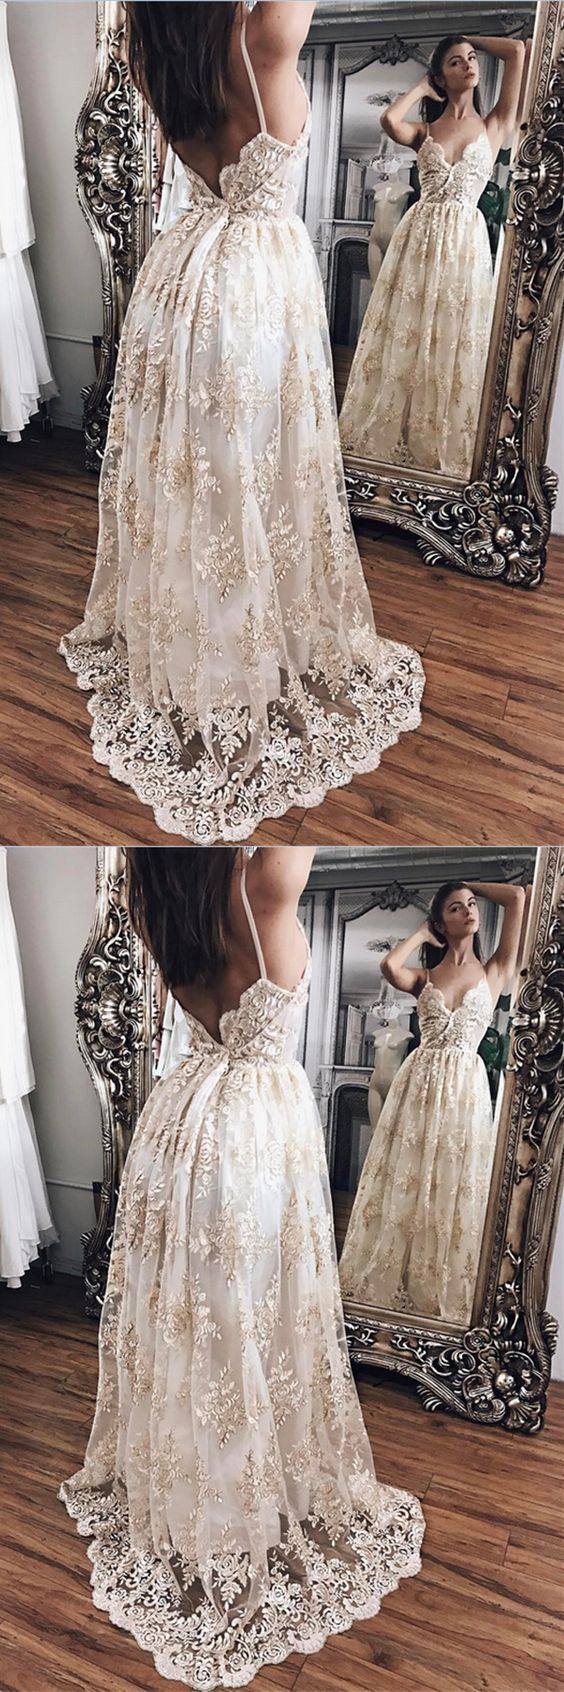 Lace prom dressesprom dressmodest prom gownsexy prom gownlace